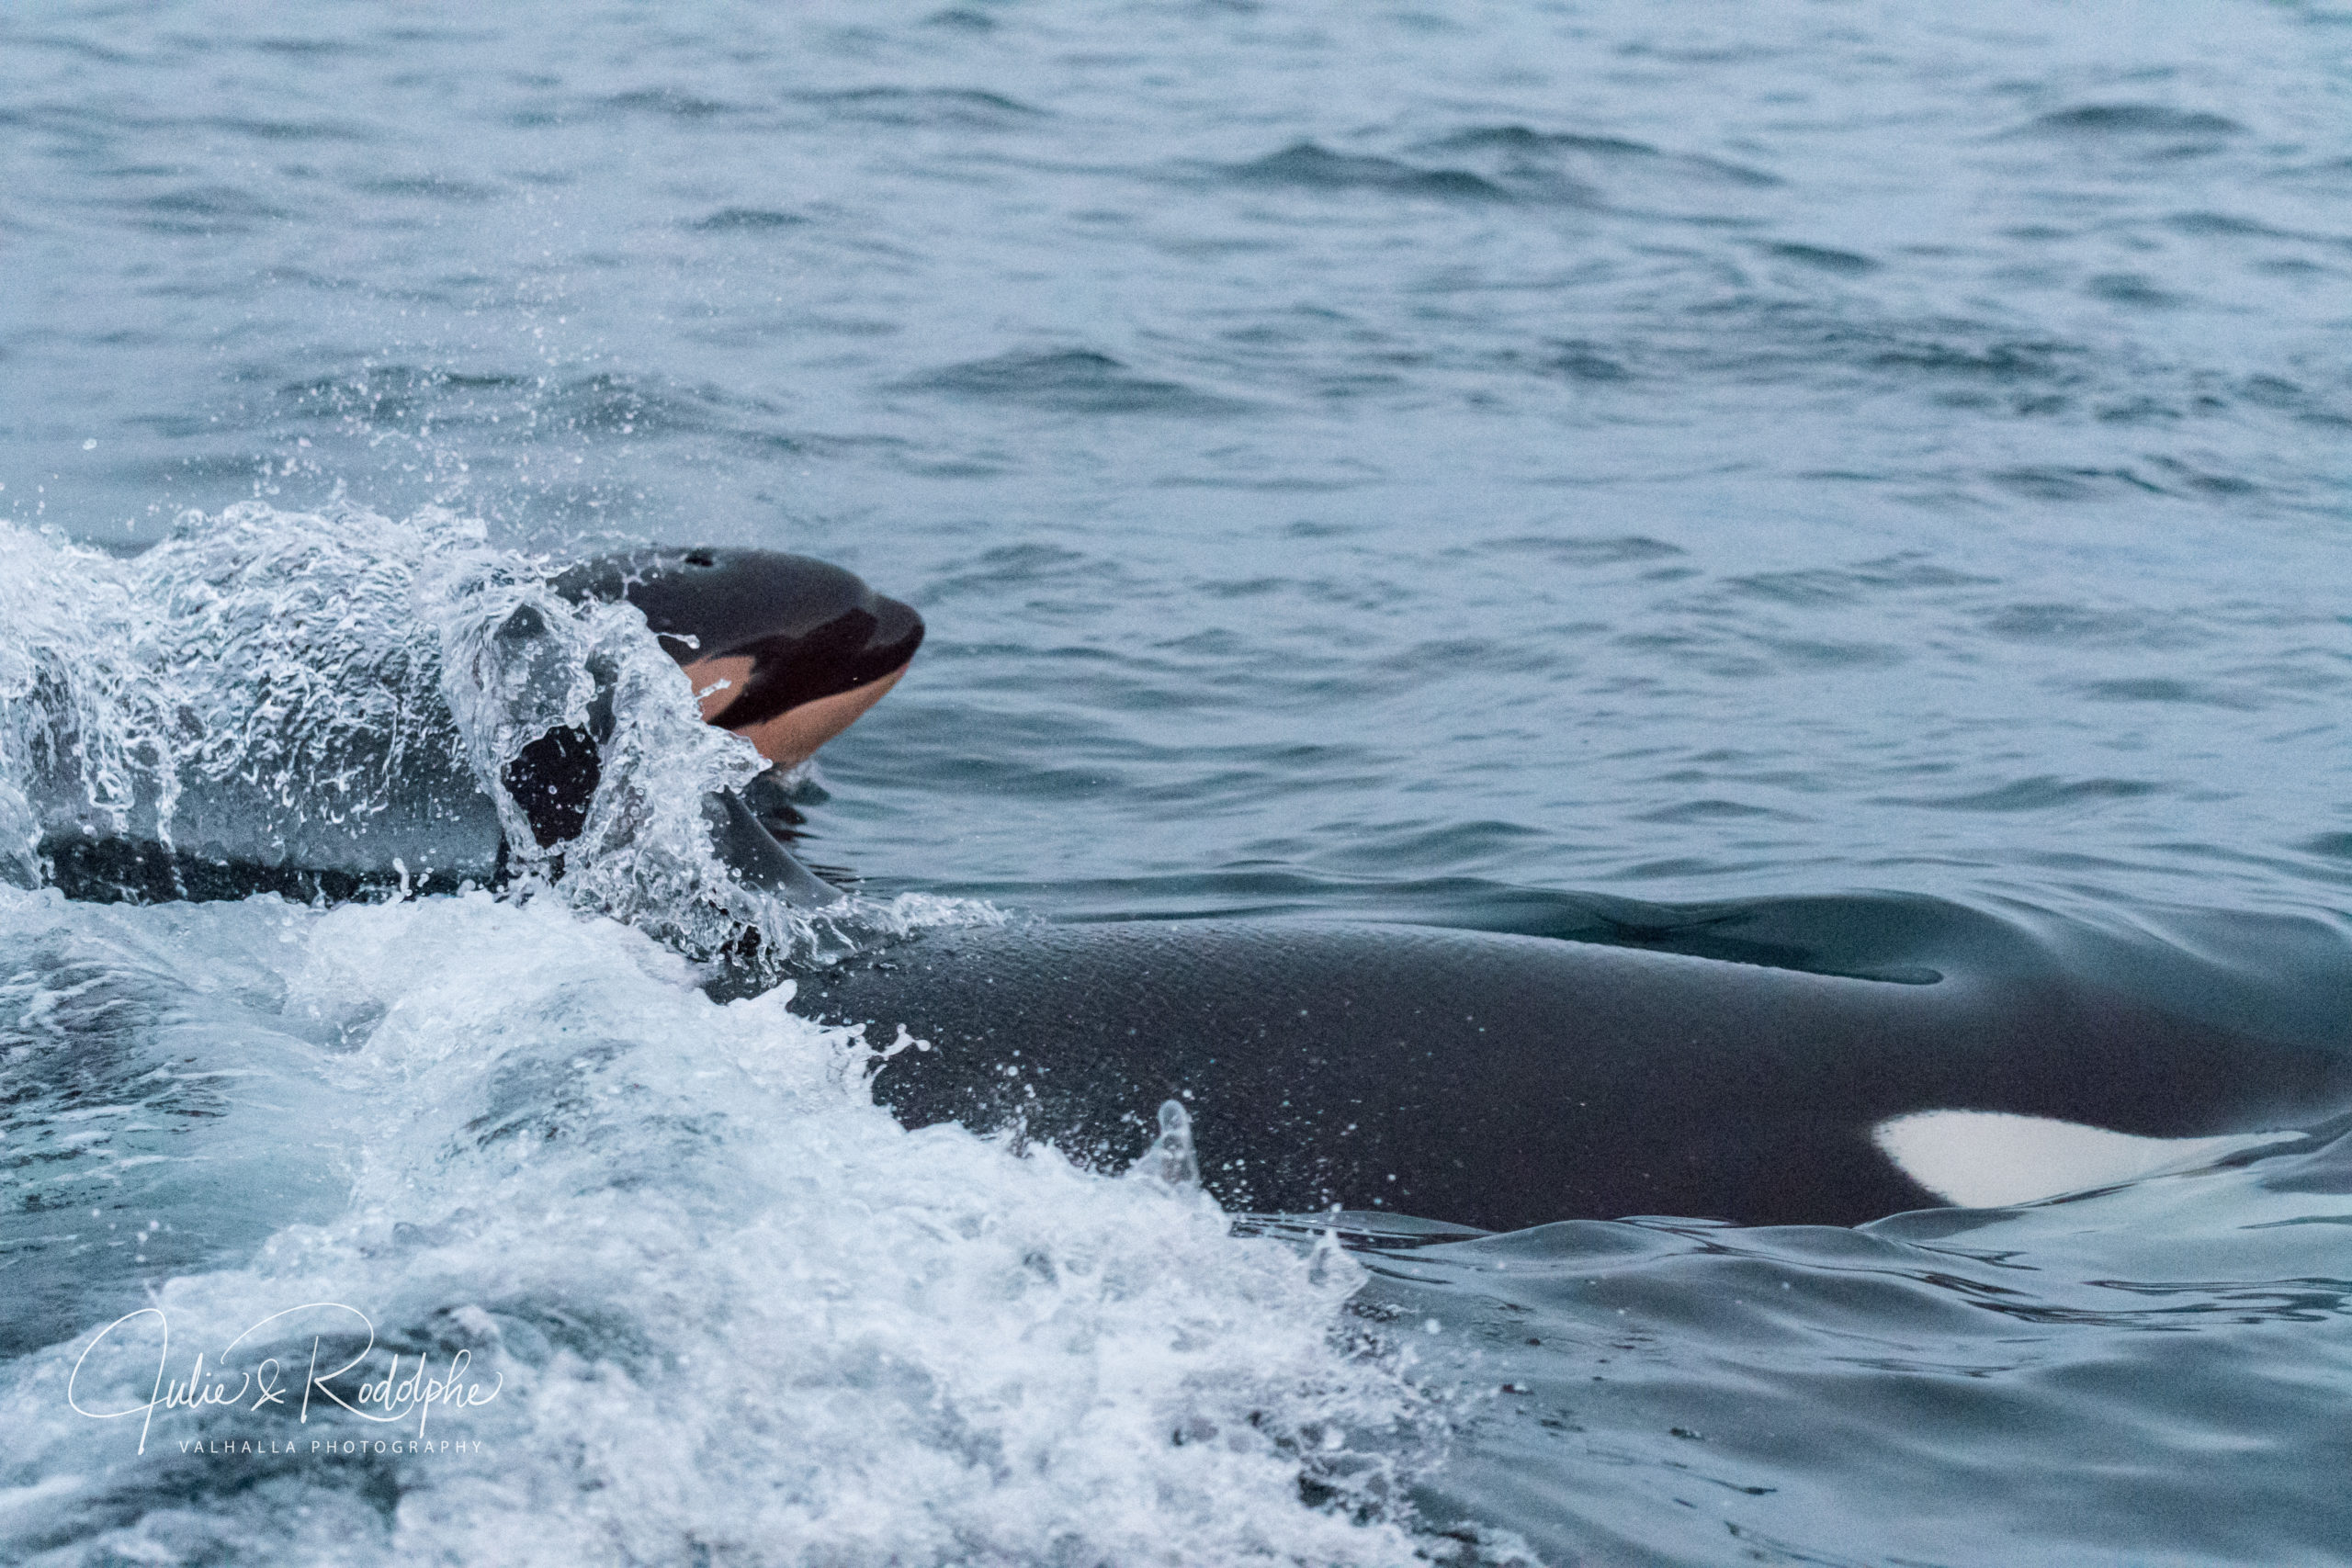 baby calf killerwhale with mother black fish